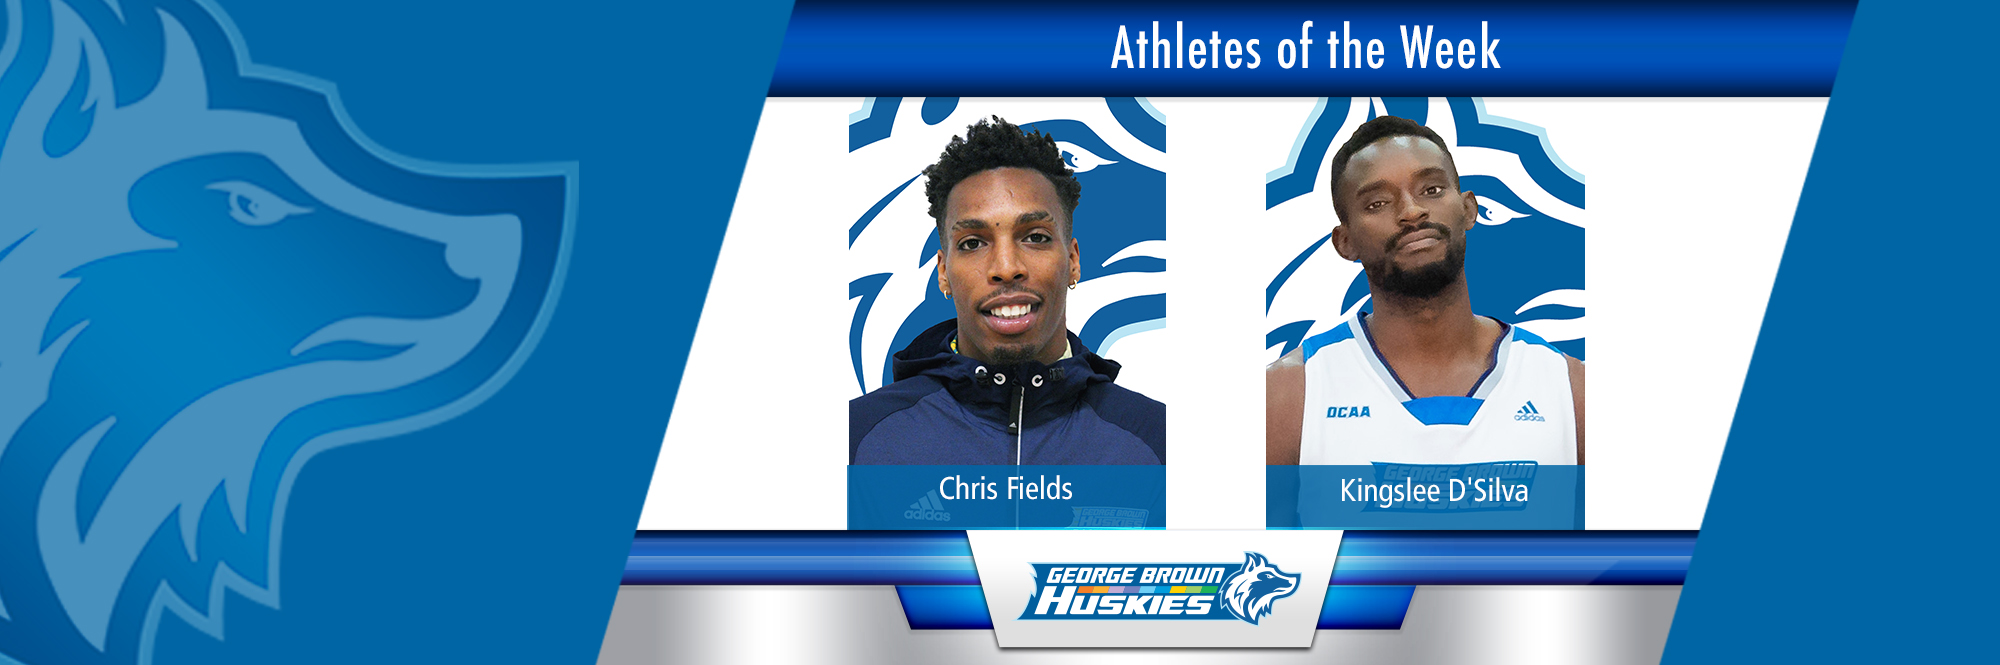 CHRIS FIELDS, KINGSLEE D'SILVA NAMED HUSKIES ATHLETE OF THE WEEK AFTER LEADING GEORGE BROWN TO TOURNAMENT WIN